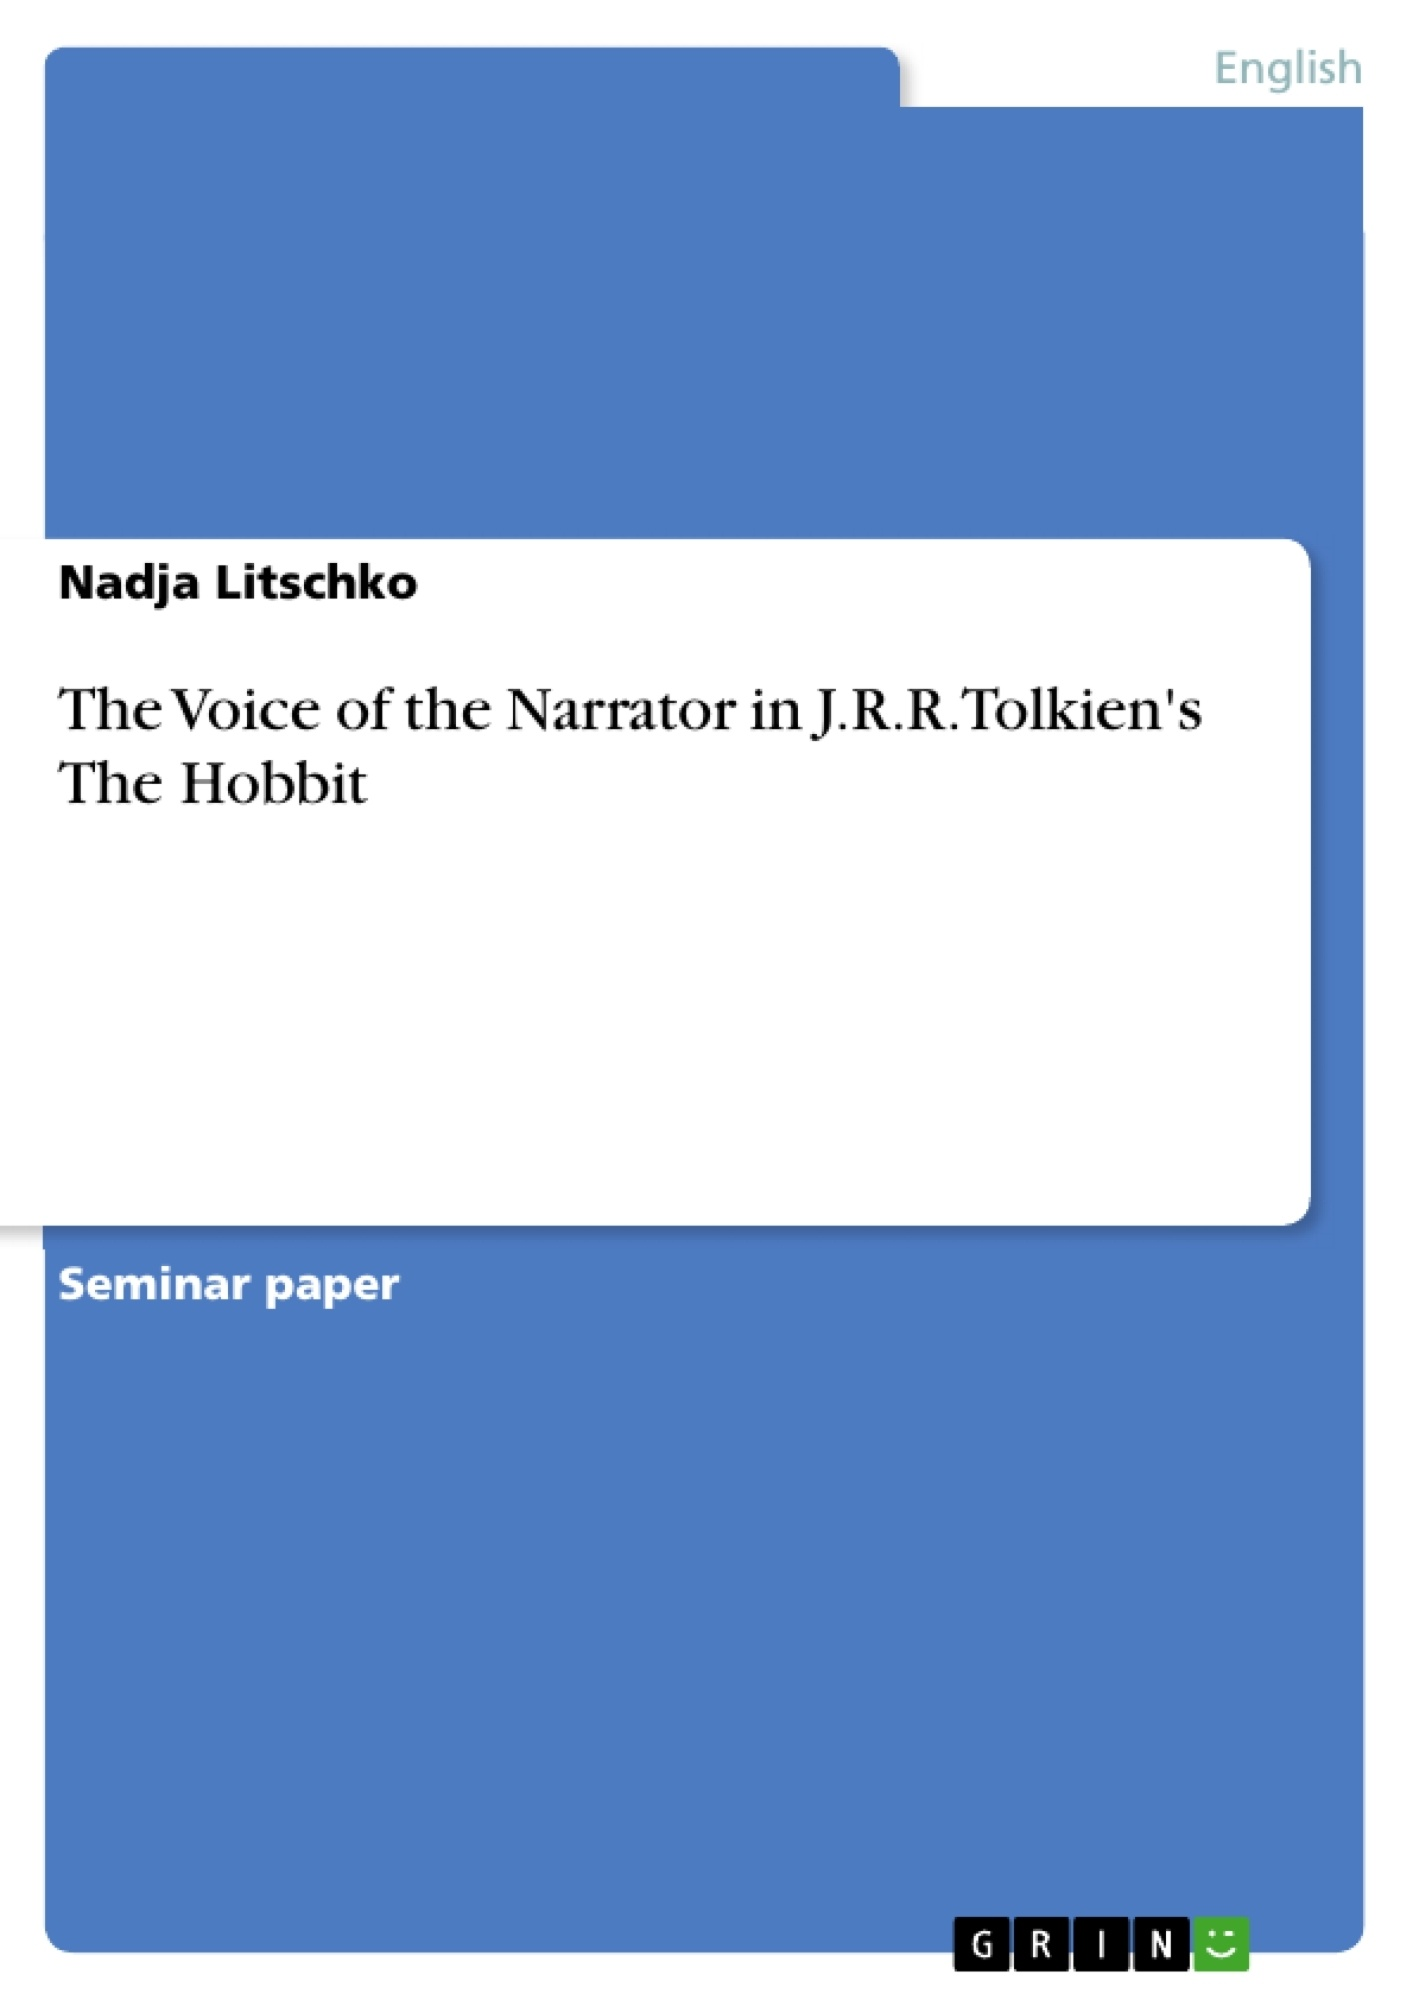 the voice of the narrator in j r r tolkien s the hobbit publish upload your own papers earn money and win an iphone 7